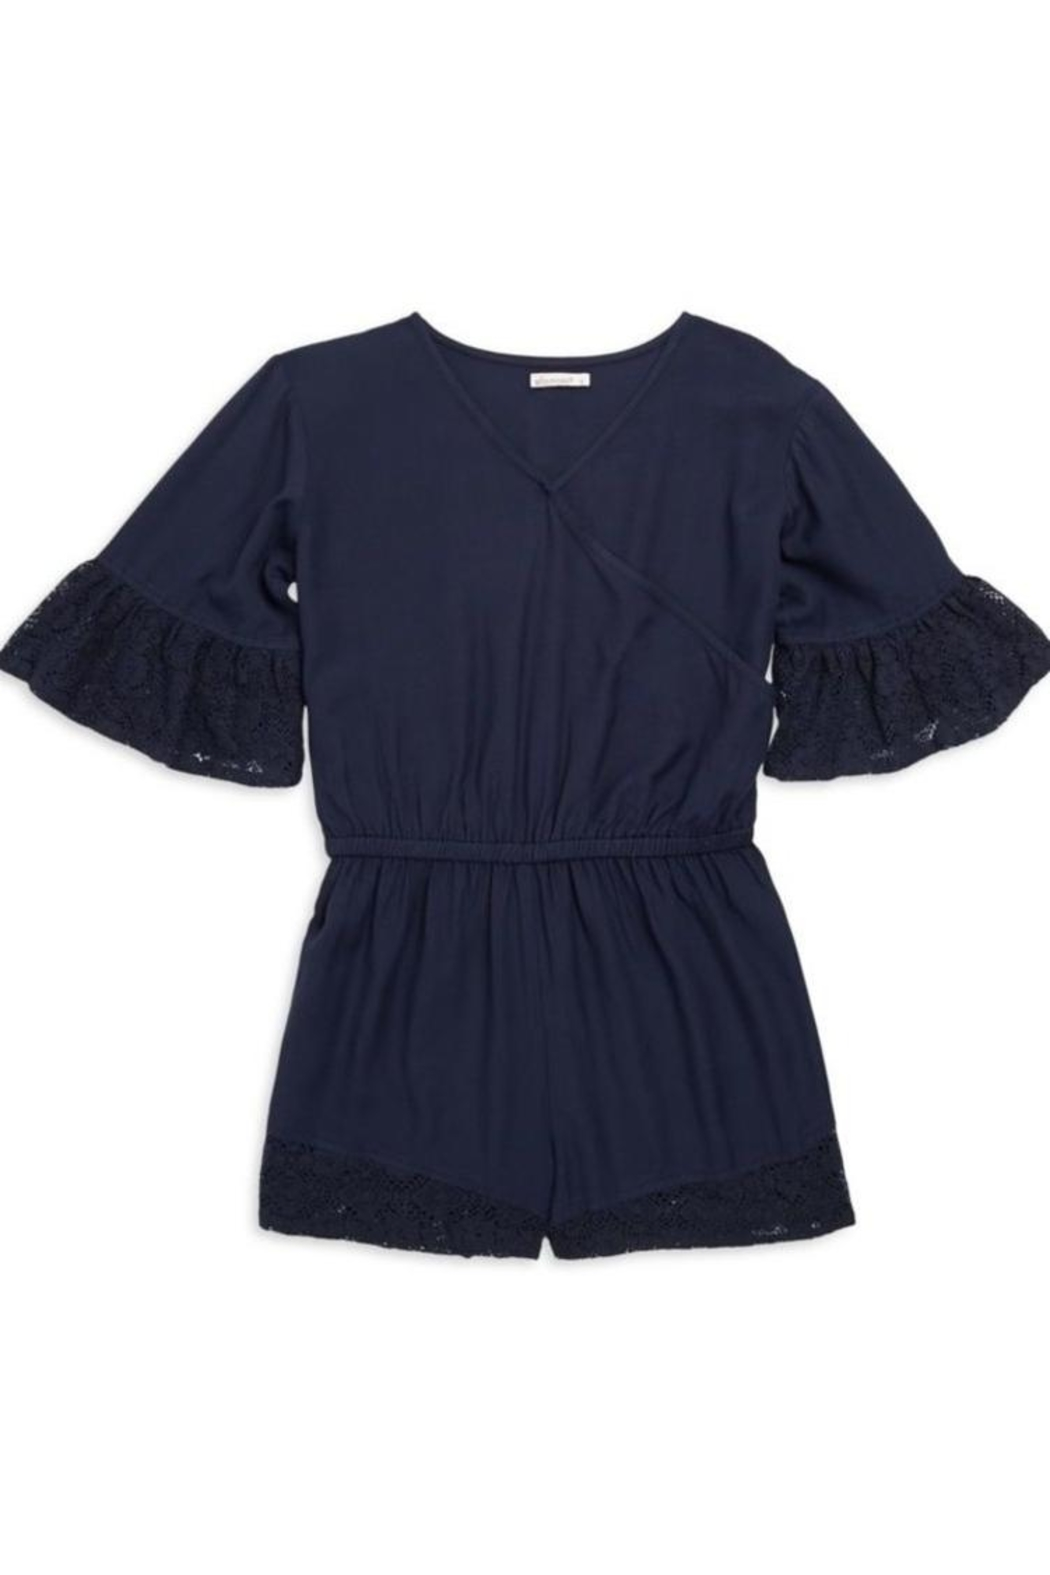 Ella Moss Voile Romper - Front Cropped Image